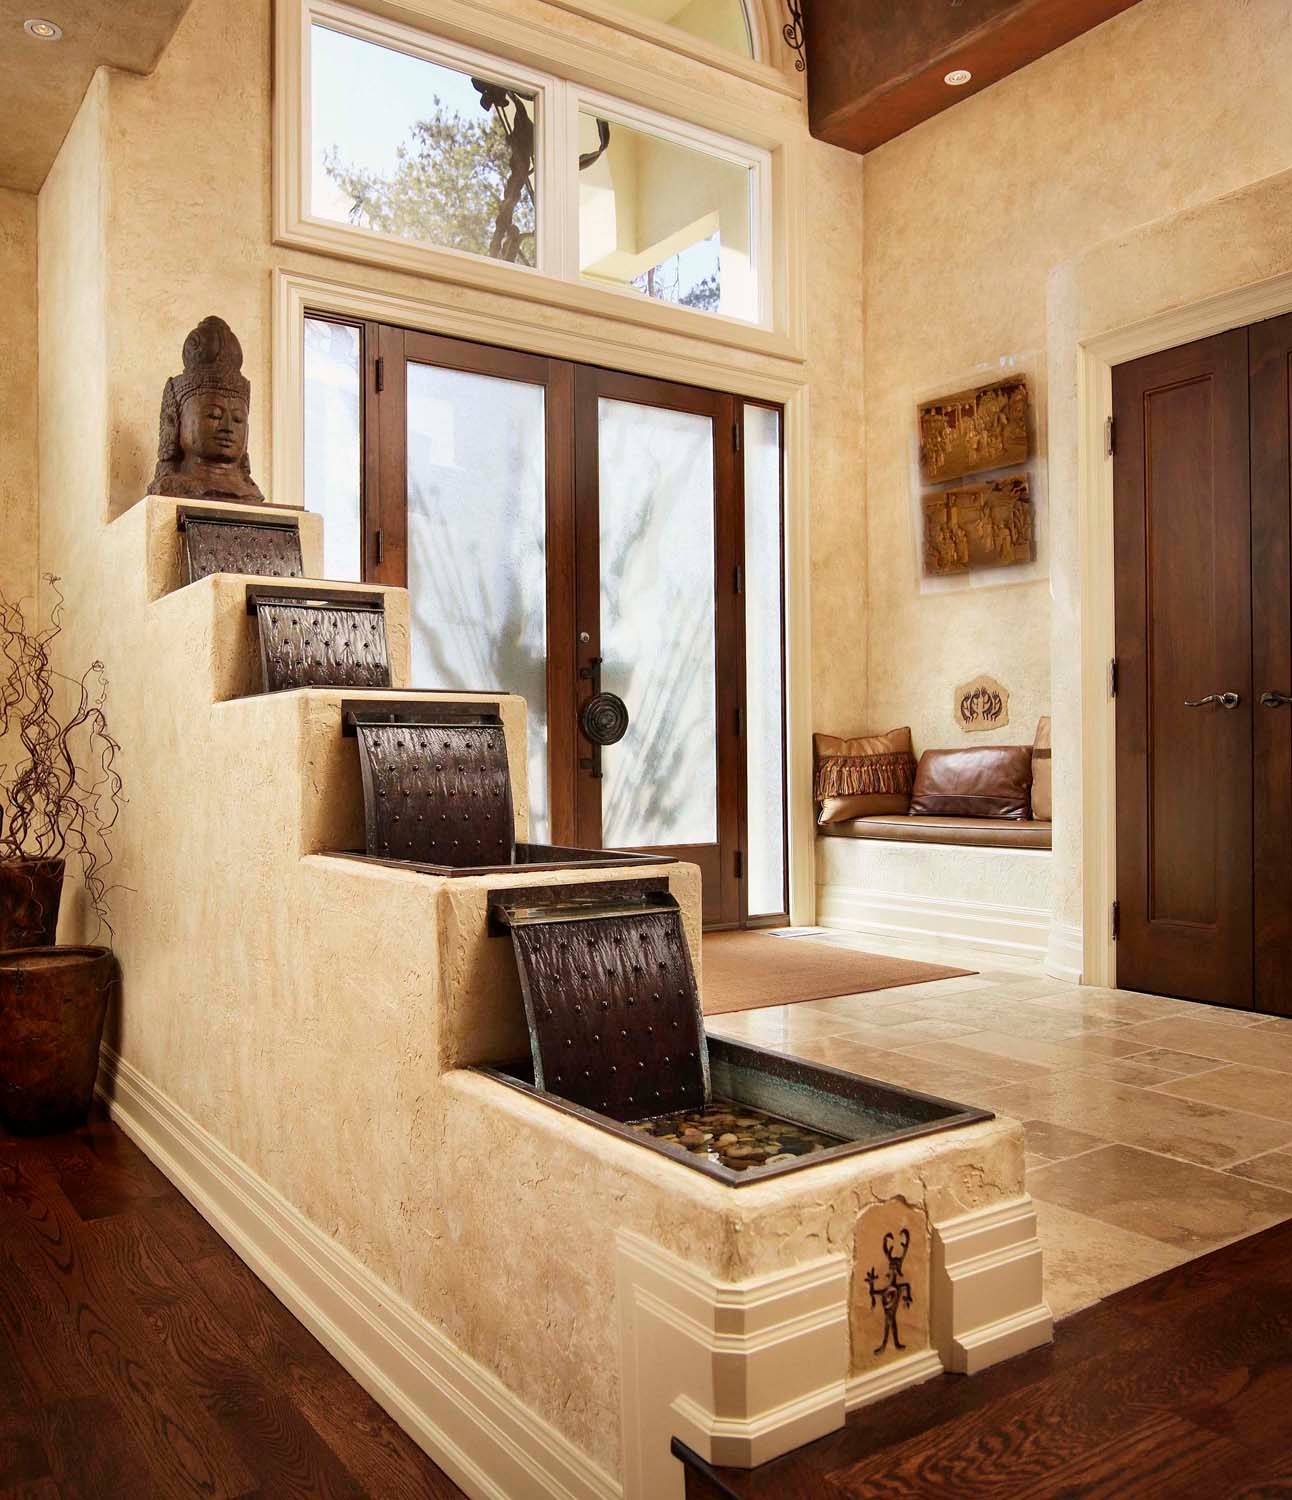 Indoor Fountains Design Ideas for Interior Decor Your Home: Rustic Entry Plus Aquatic And Built In Bench With Cushion Also Clerestory Windows With Double Doors Plus Indoor Fountains And Hardwood Flooring Also Sculpture With Tall Ceiling